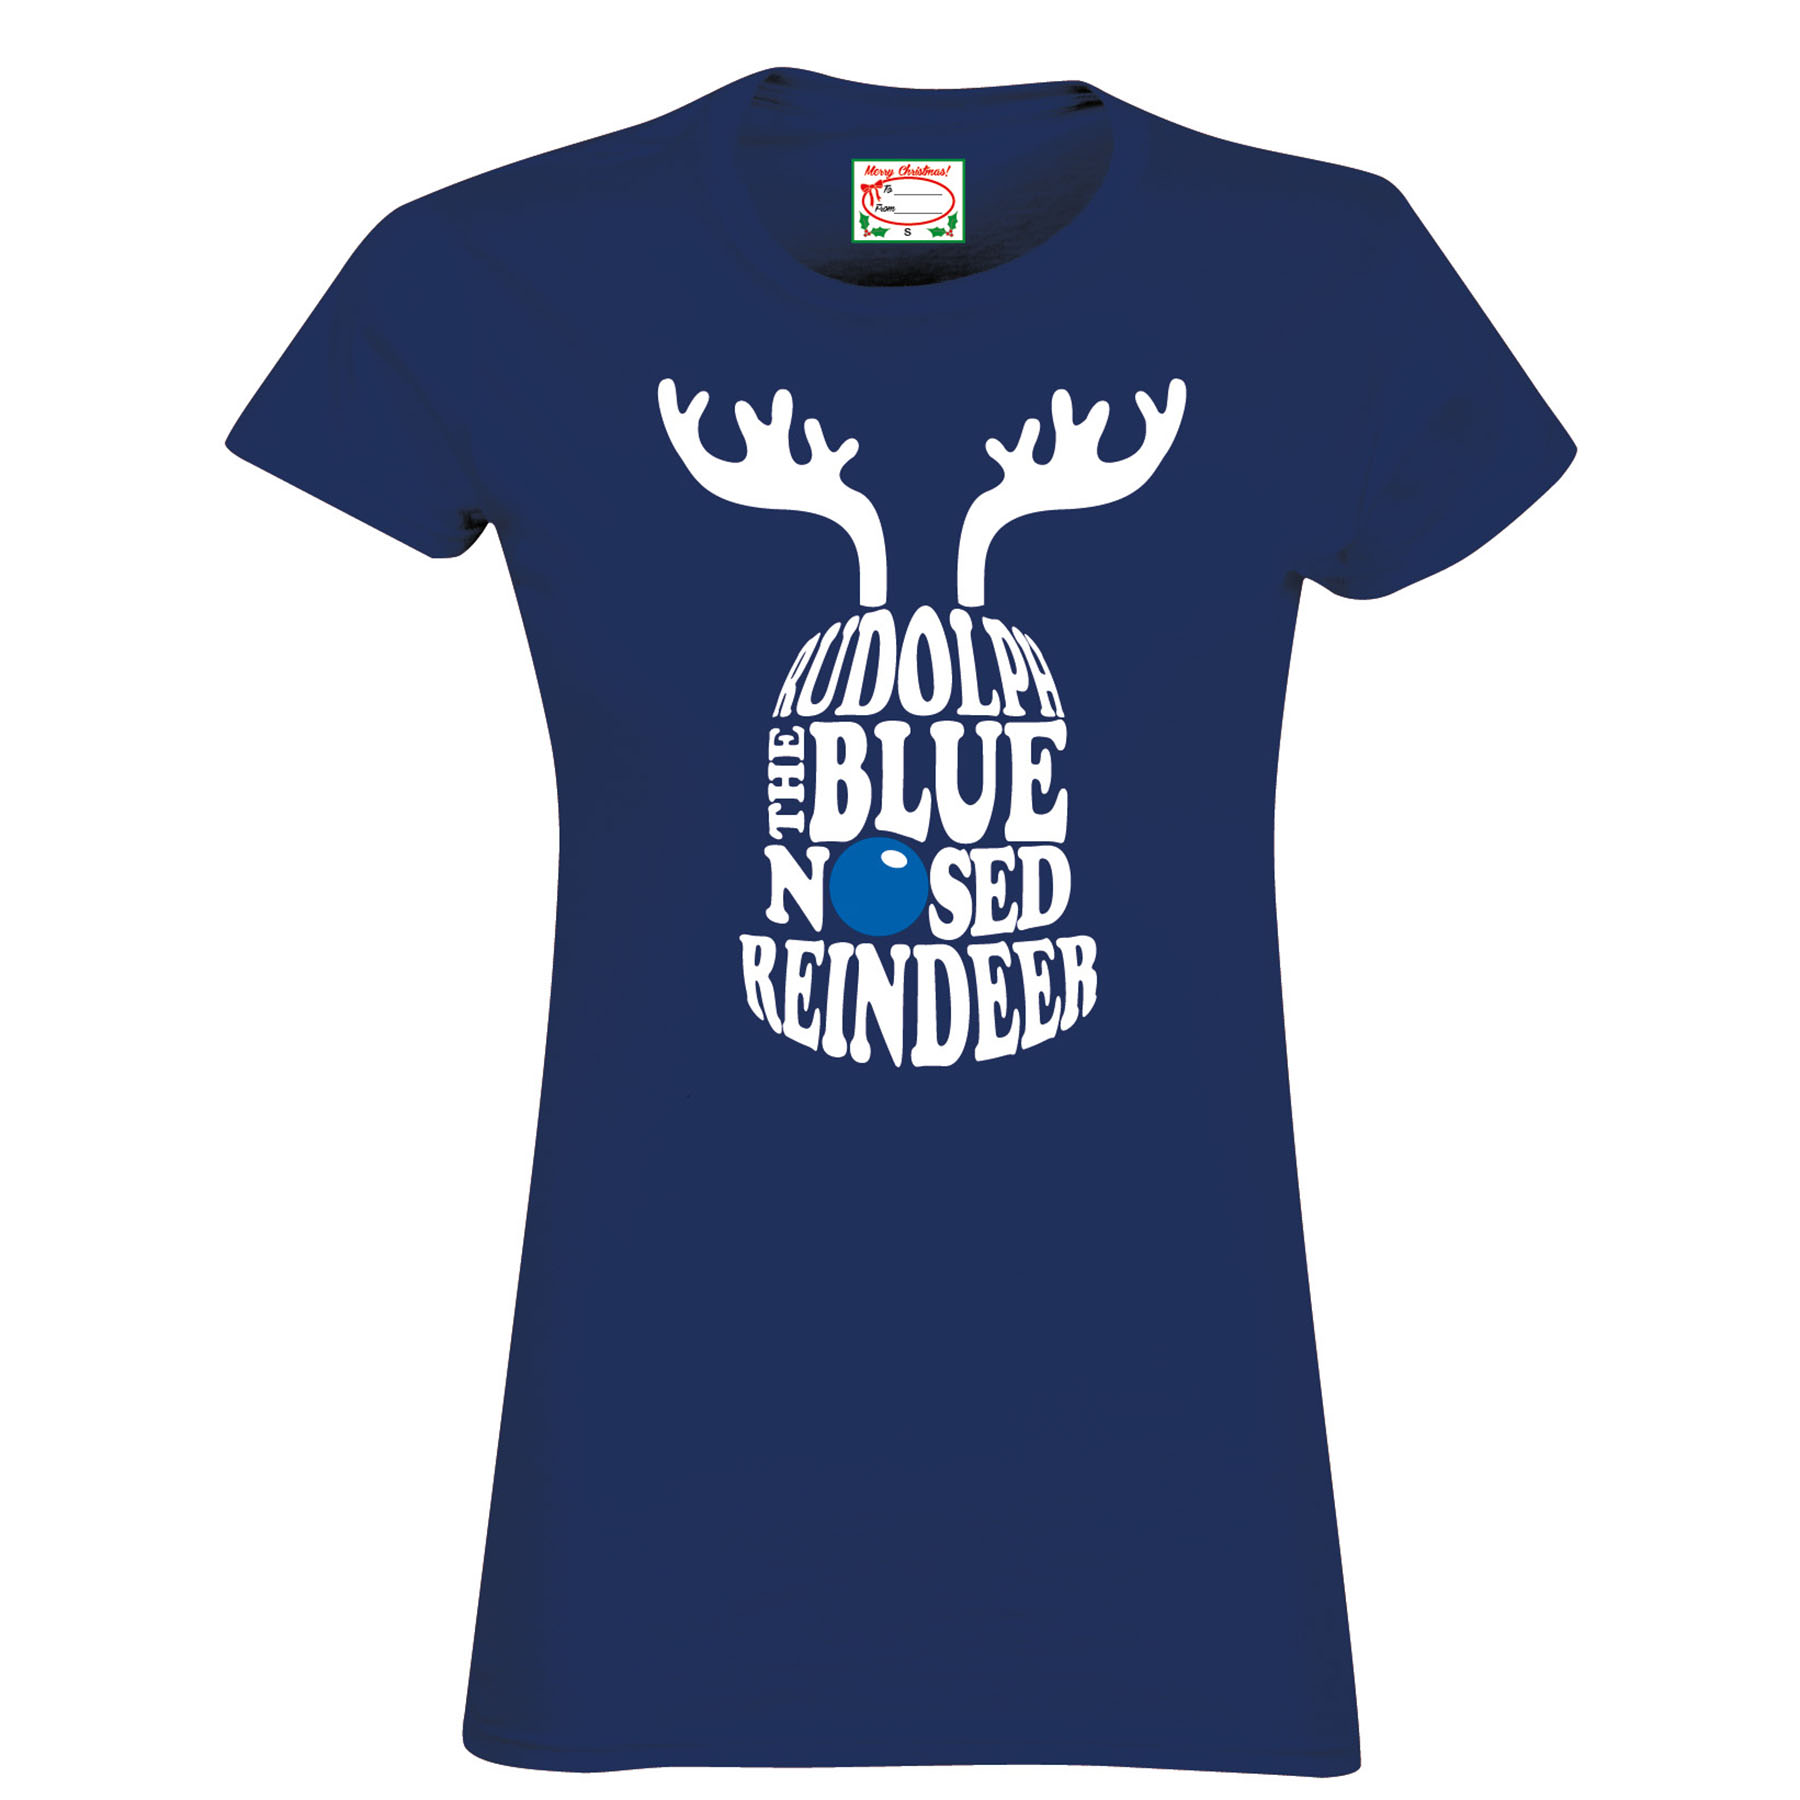 Everton 2for 20 reindeer T-Shirt- Navy - Womens